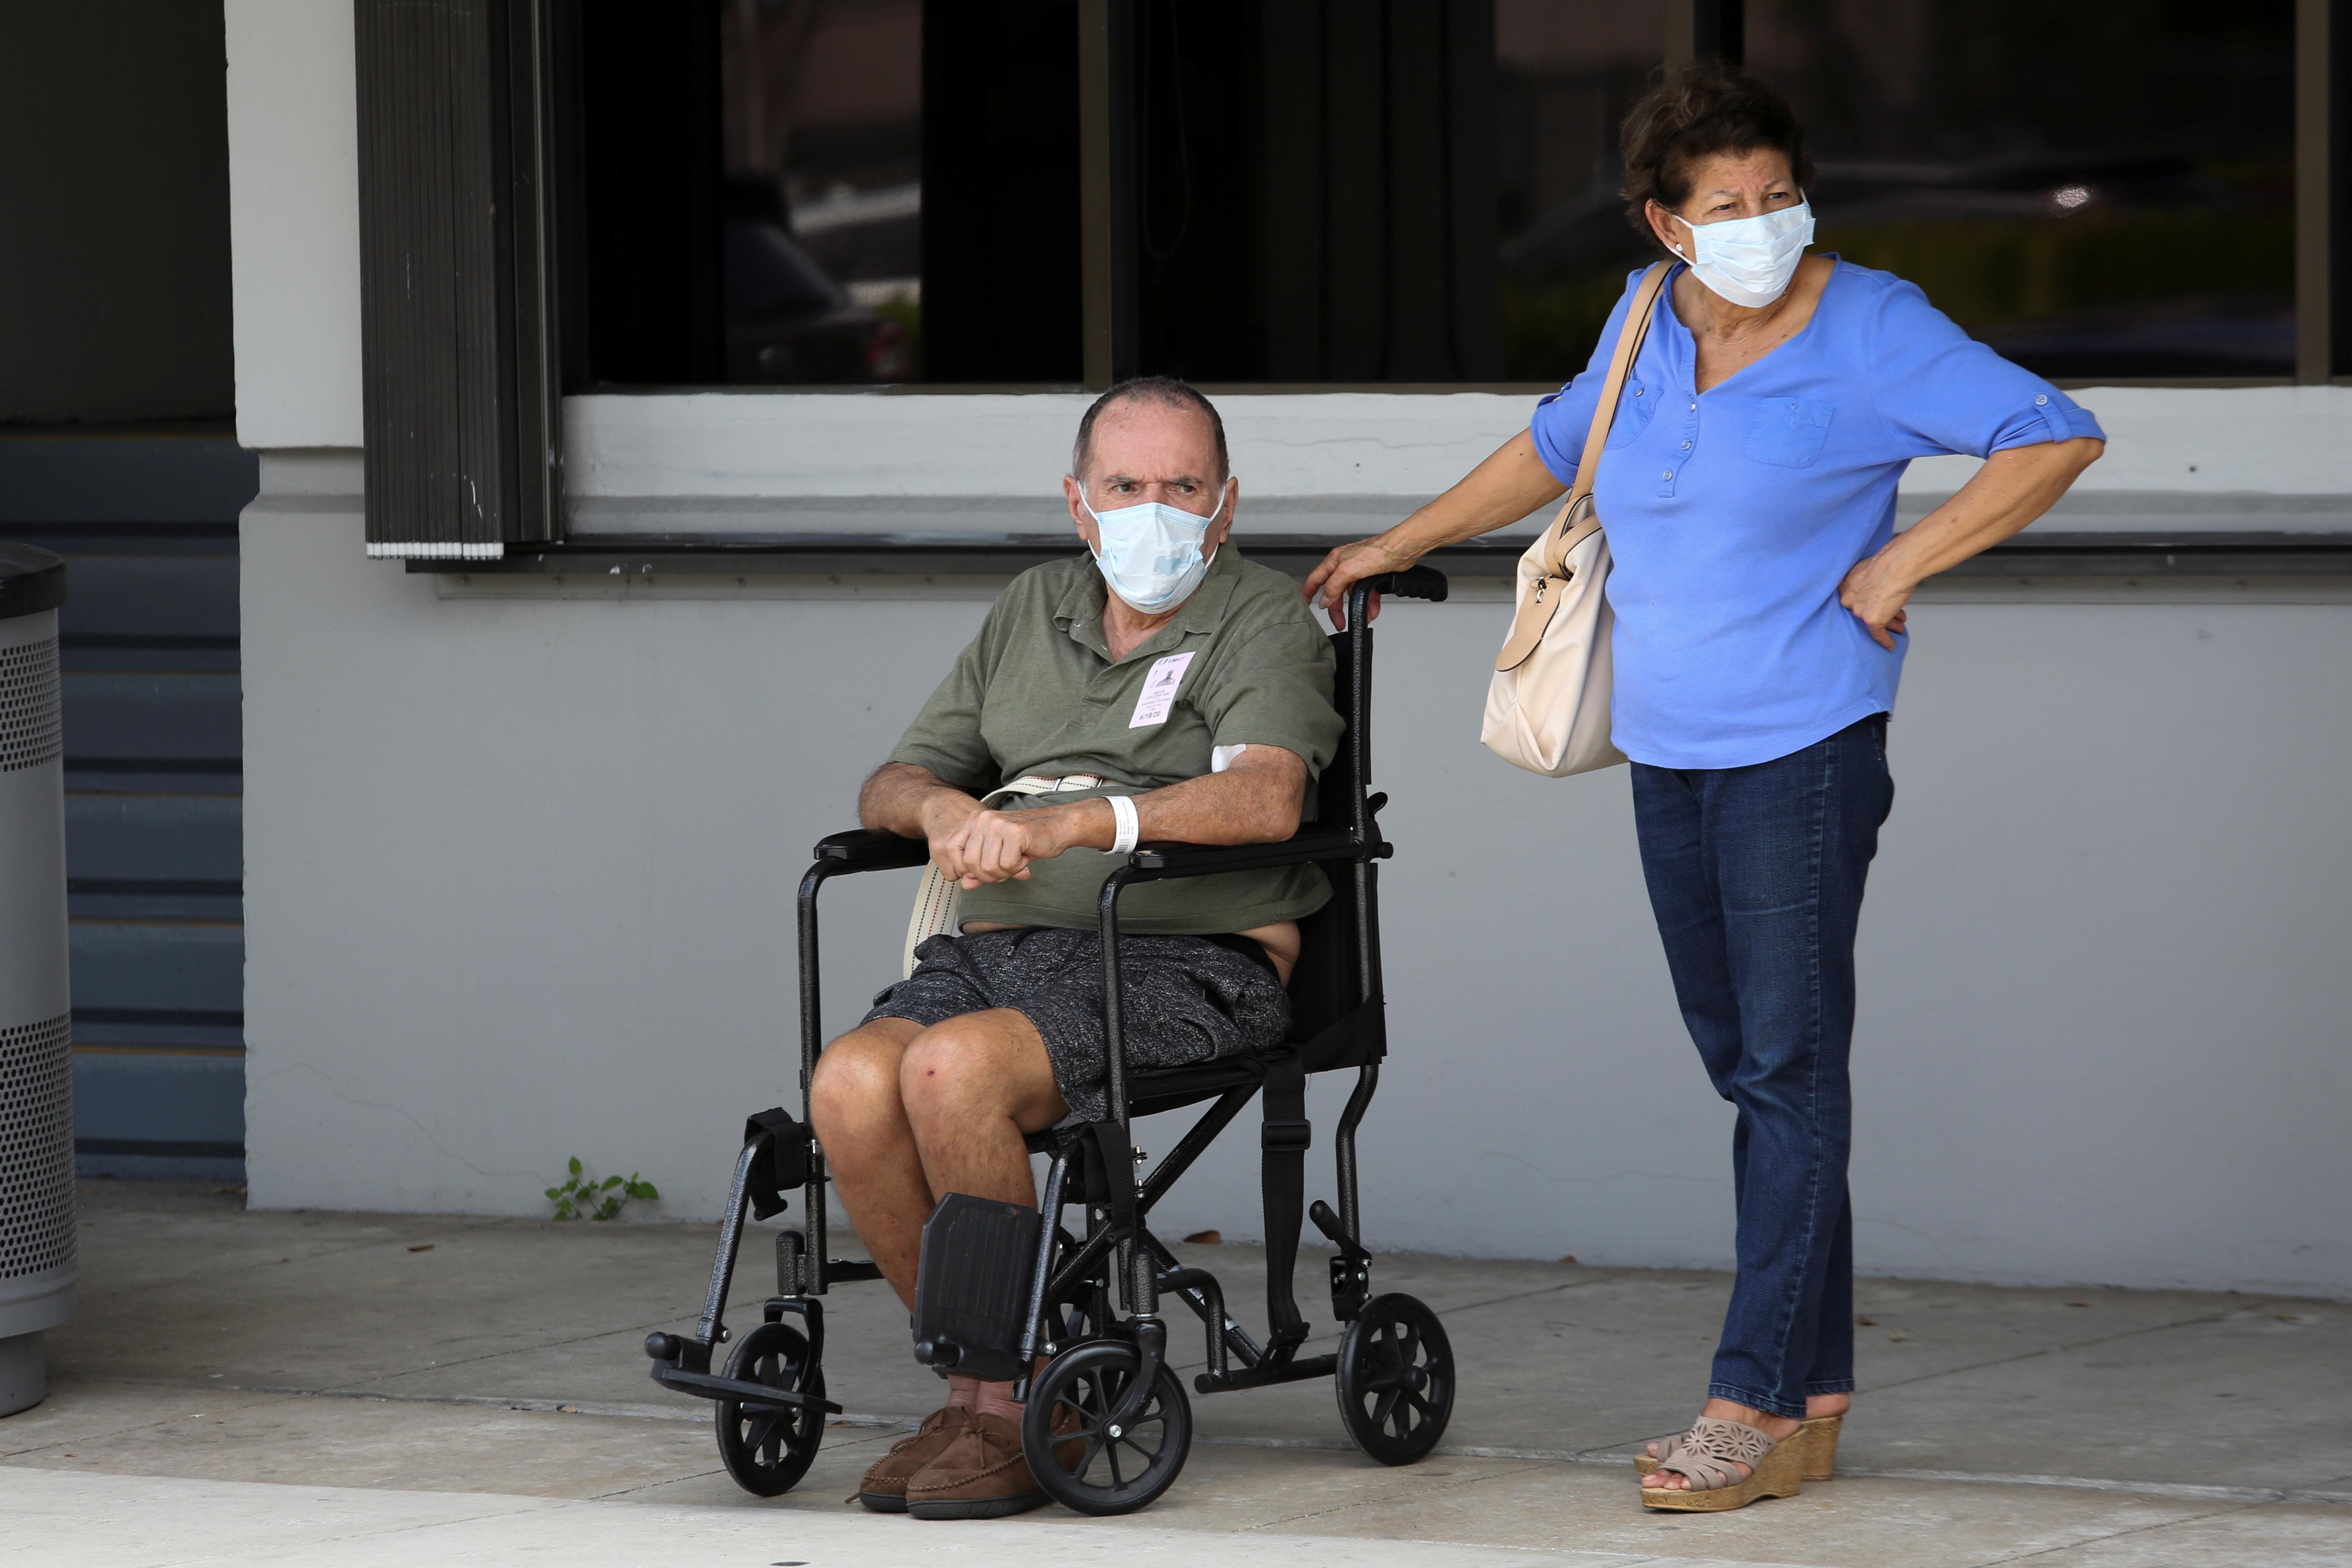 Florida and Texas take steps back as US infections soar